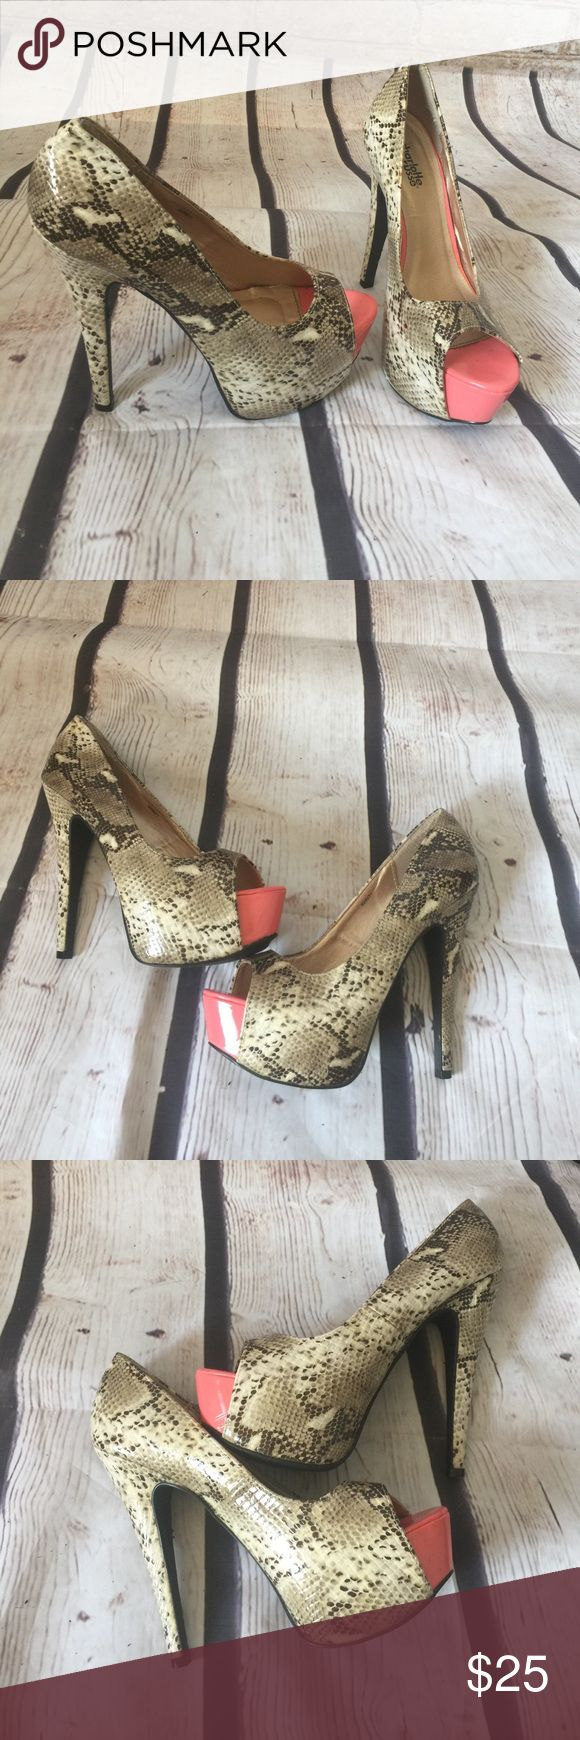 Charlotte Russe  snakeskin tan coral platform heel Charlotte Russe tan and coral platform high-heeled snakeskin excellent condition worn once pics are very detailed very sexy on! Love these heels Charlotte Russe Shoes Platforms